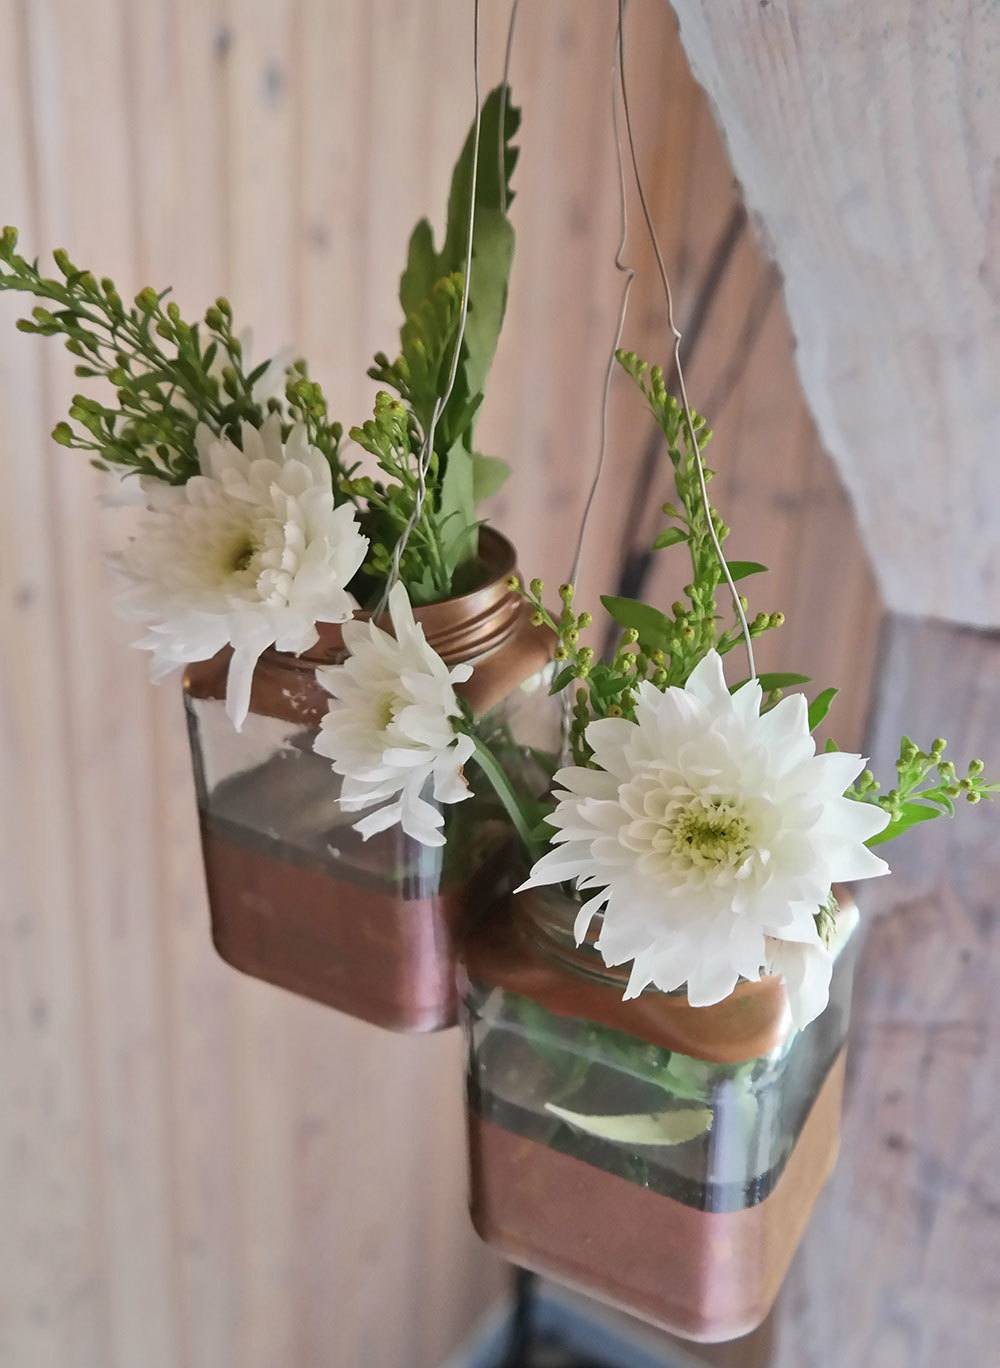 DIY flower vases out of jelly jars | @skimbaco